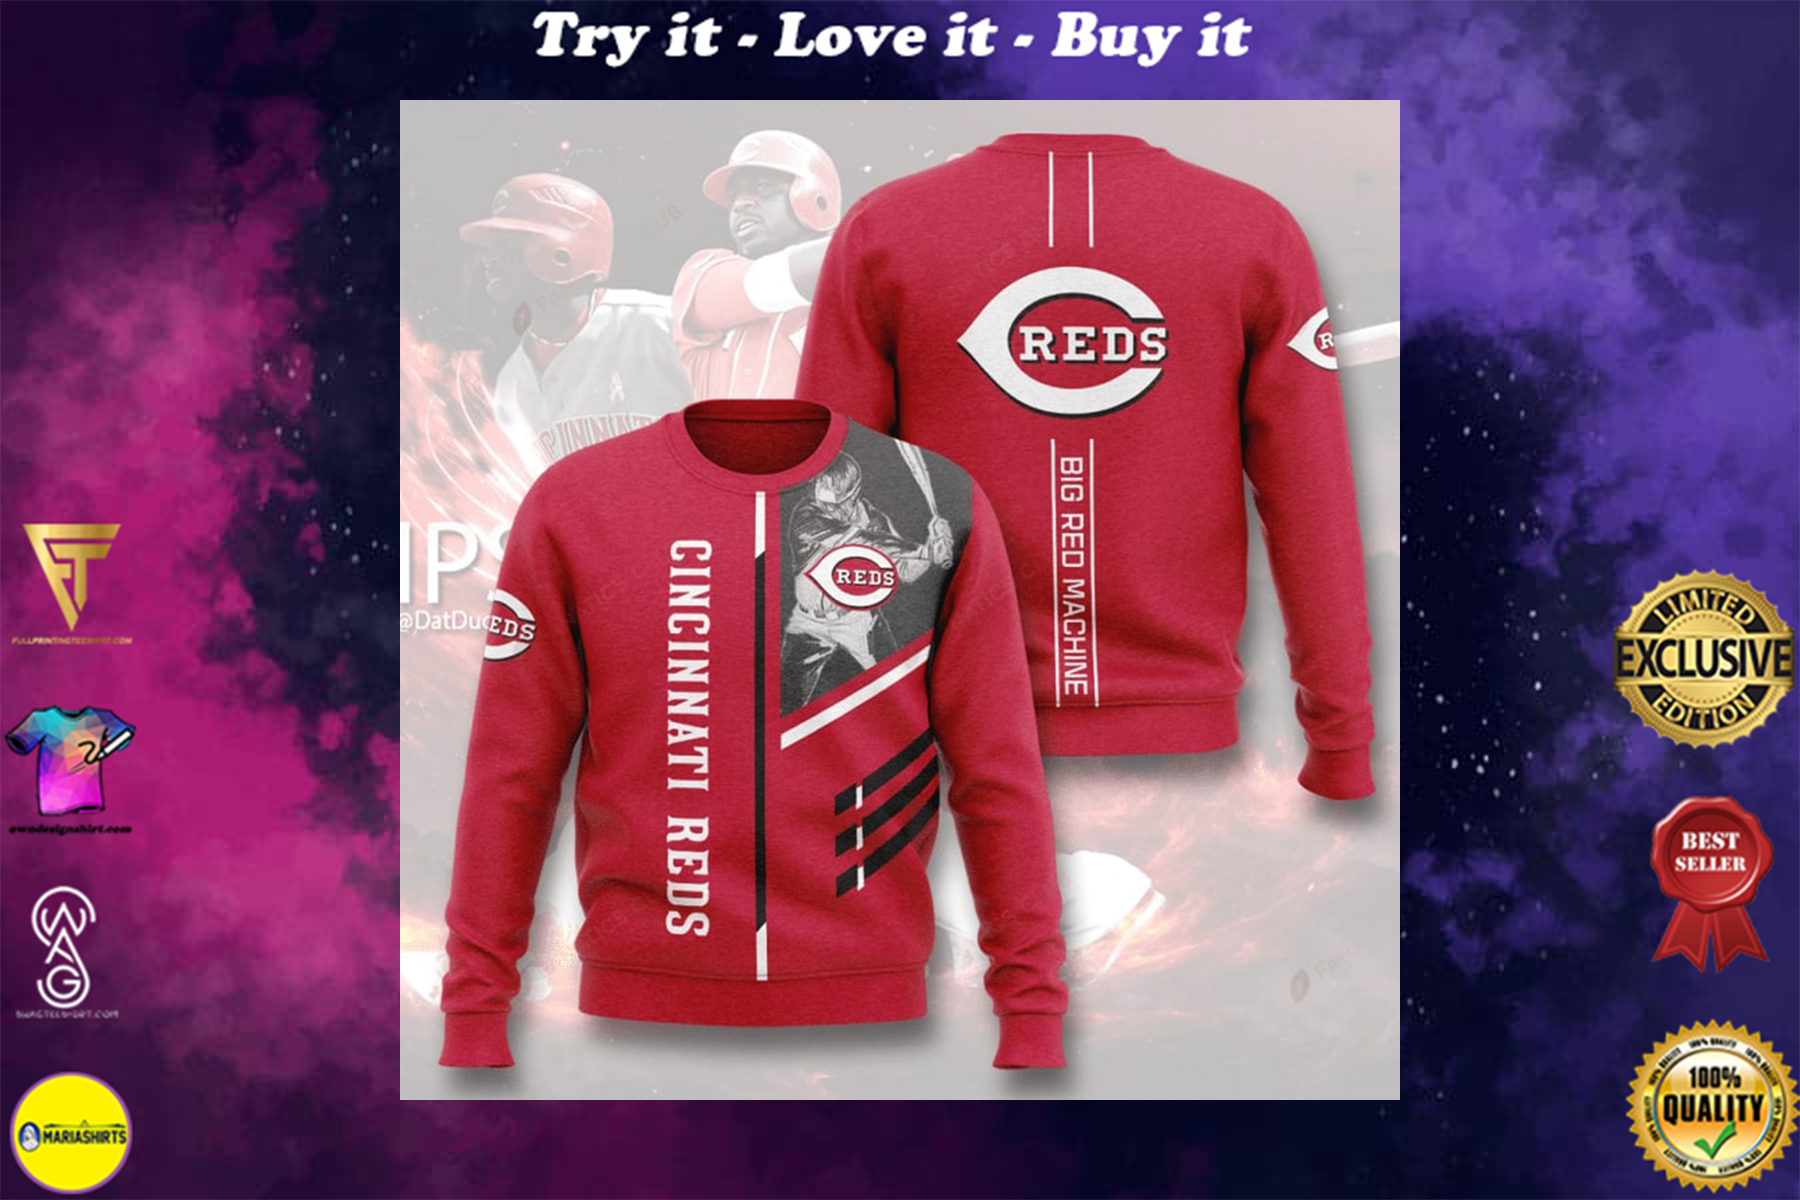 [highest selling] cincinnati reds big red machine full printing ugly sweater - maria